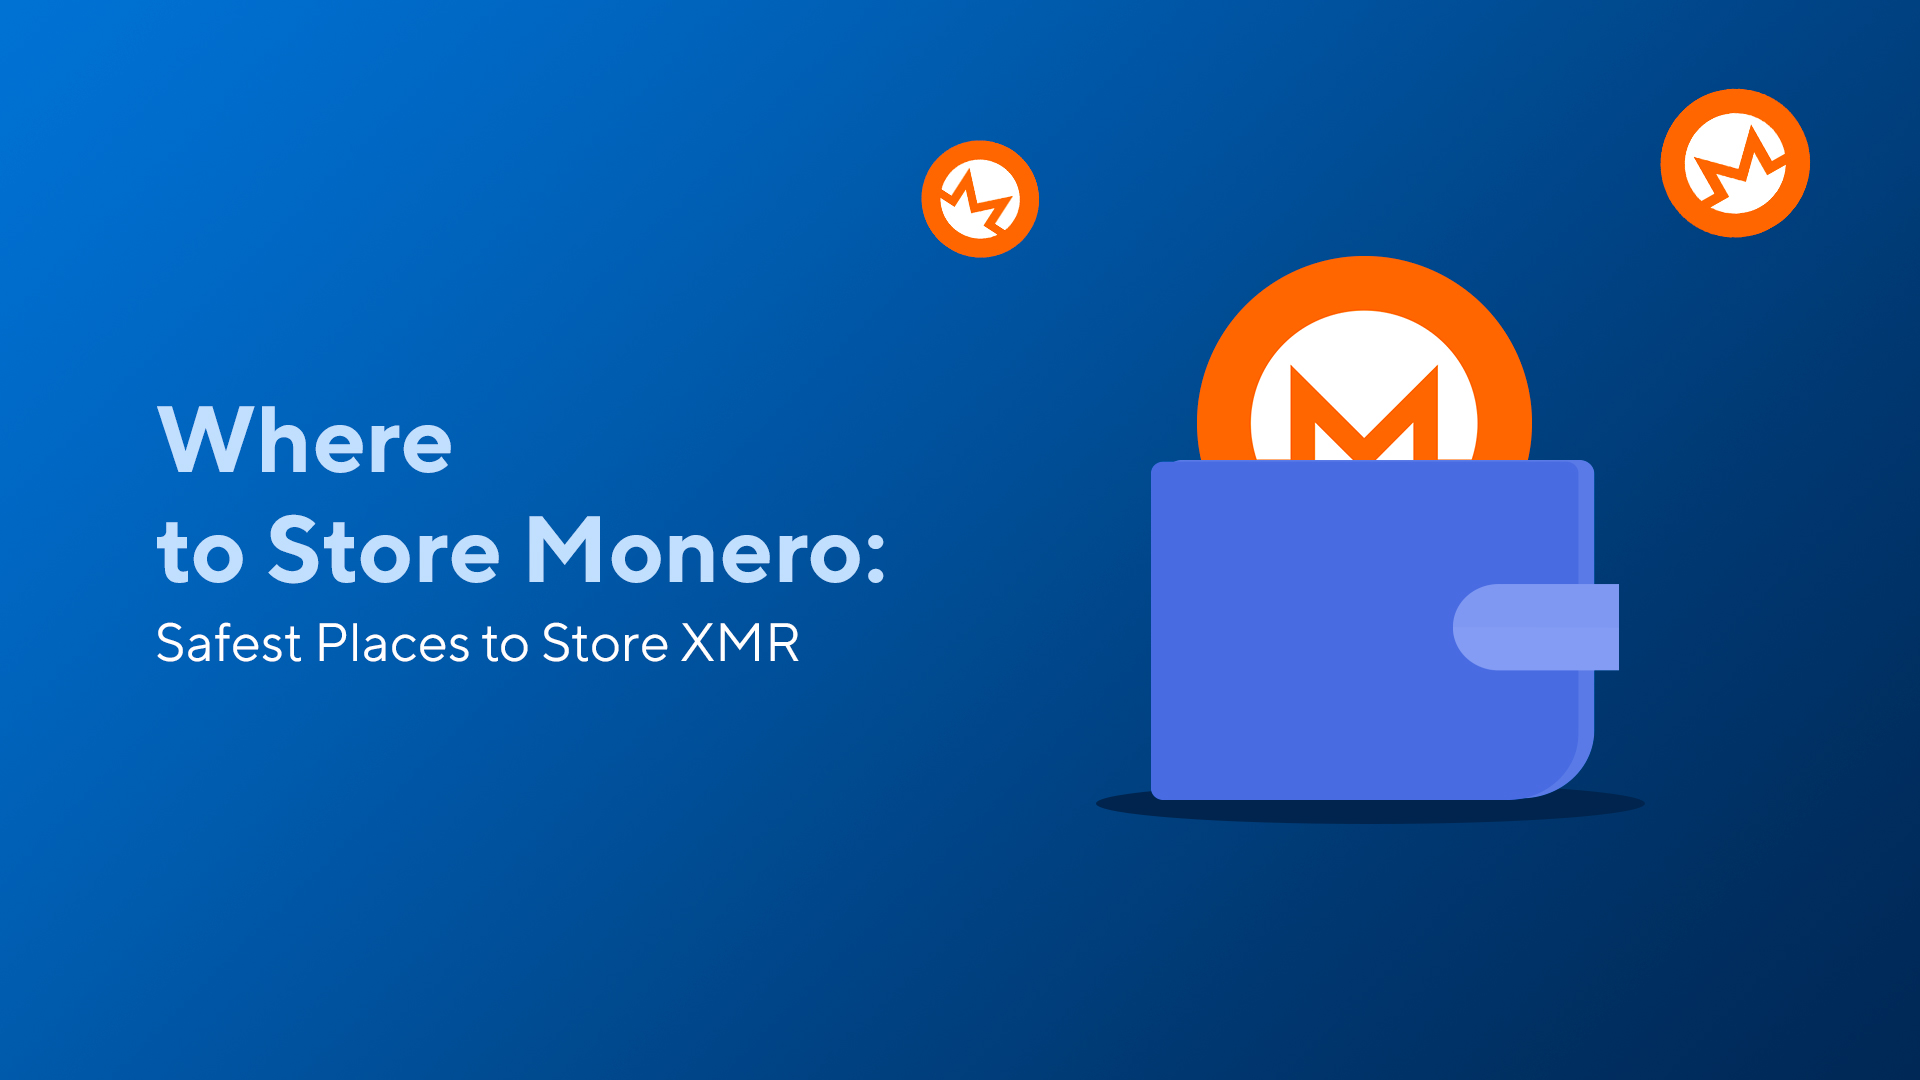 Where to Store Monero: Safest Places to Store XMR